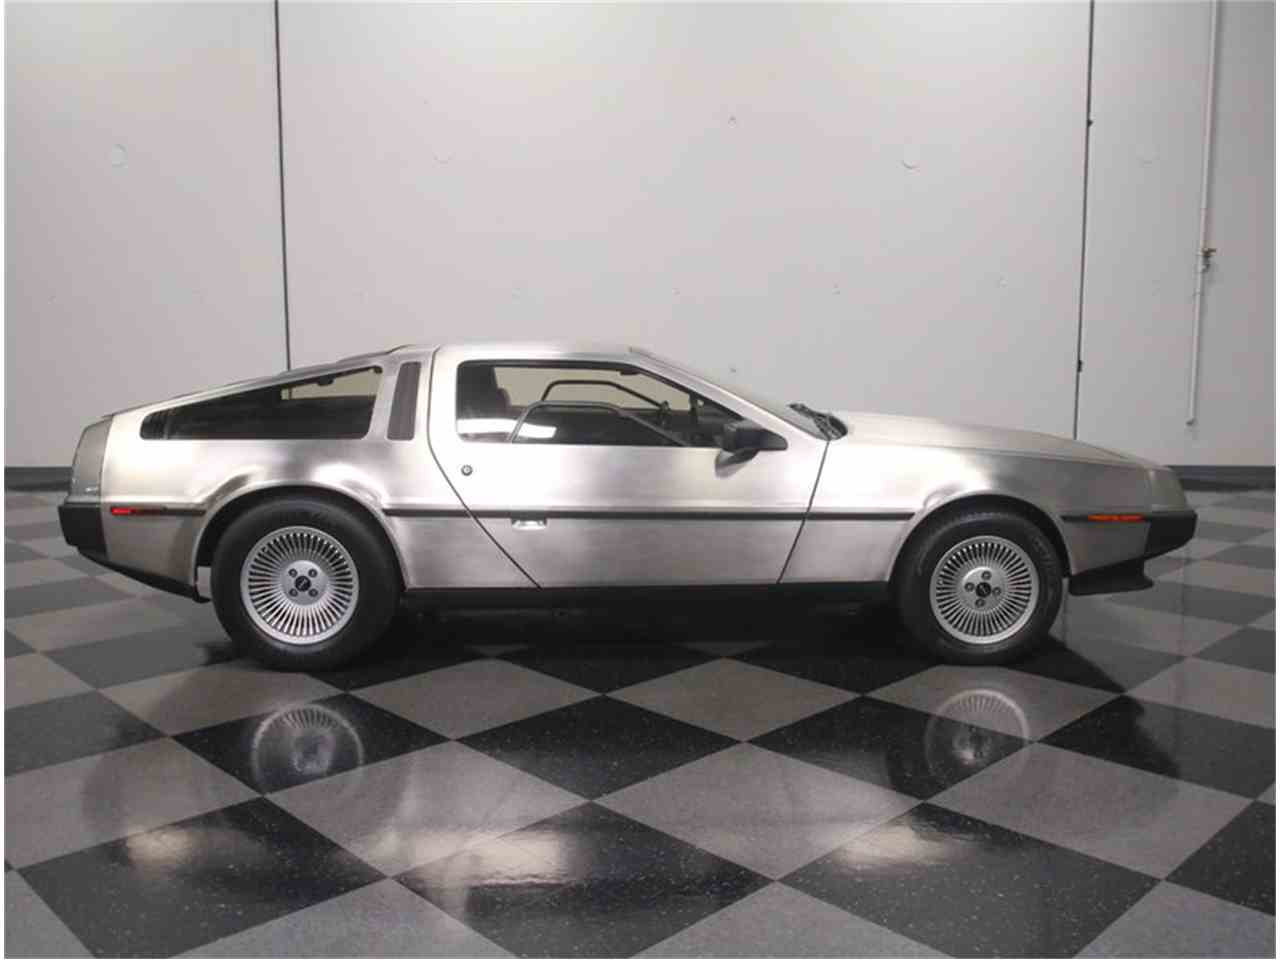 Large Picture of 1981 DMC-12 located in Lithia Springs Georgia - $49,995.00 Offered by Streetside Classics - Atlanta - MGXM